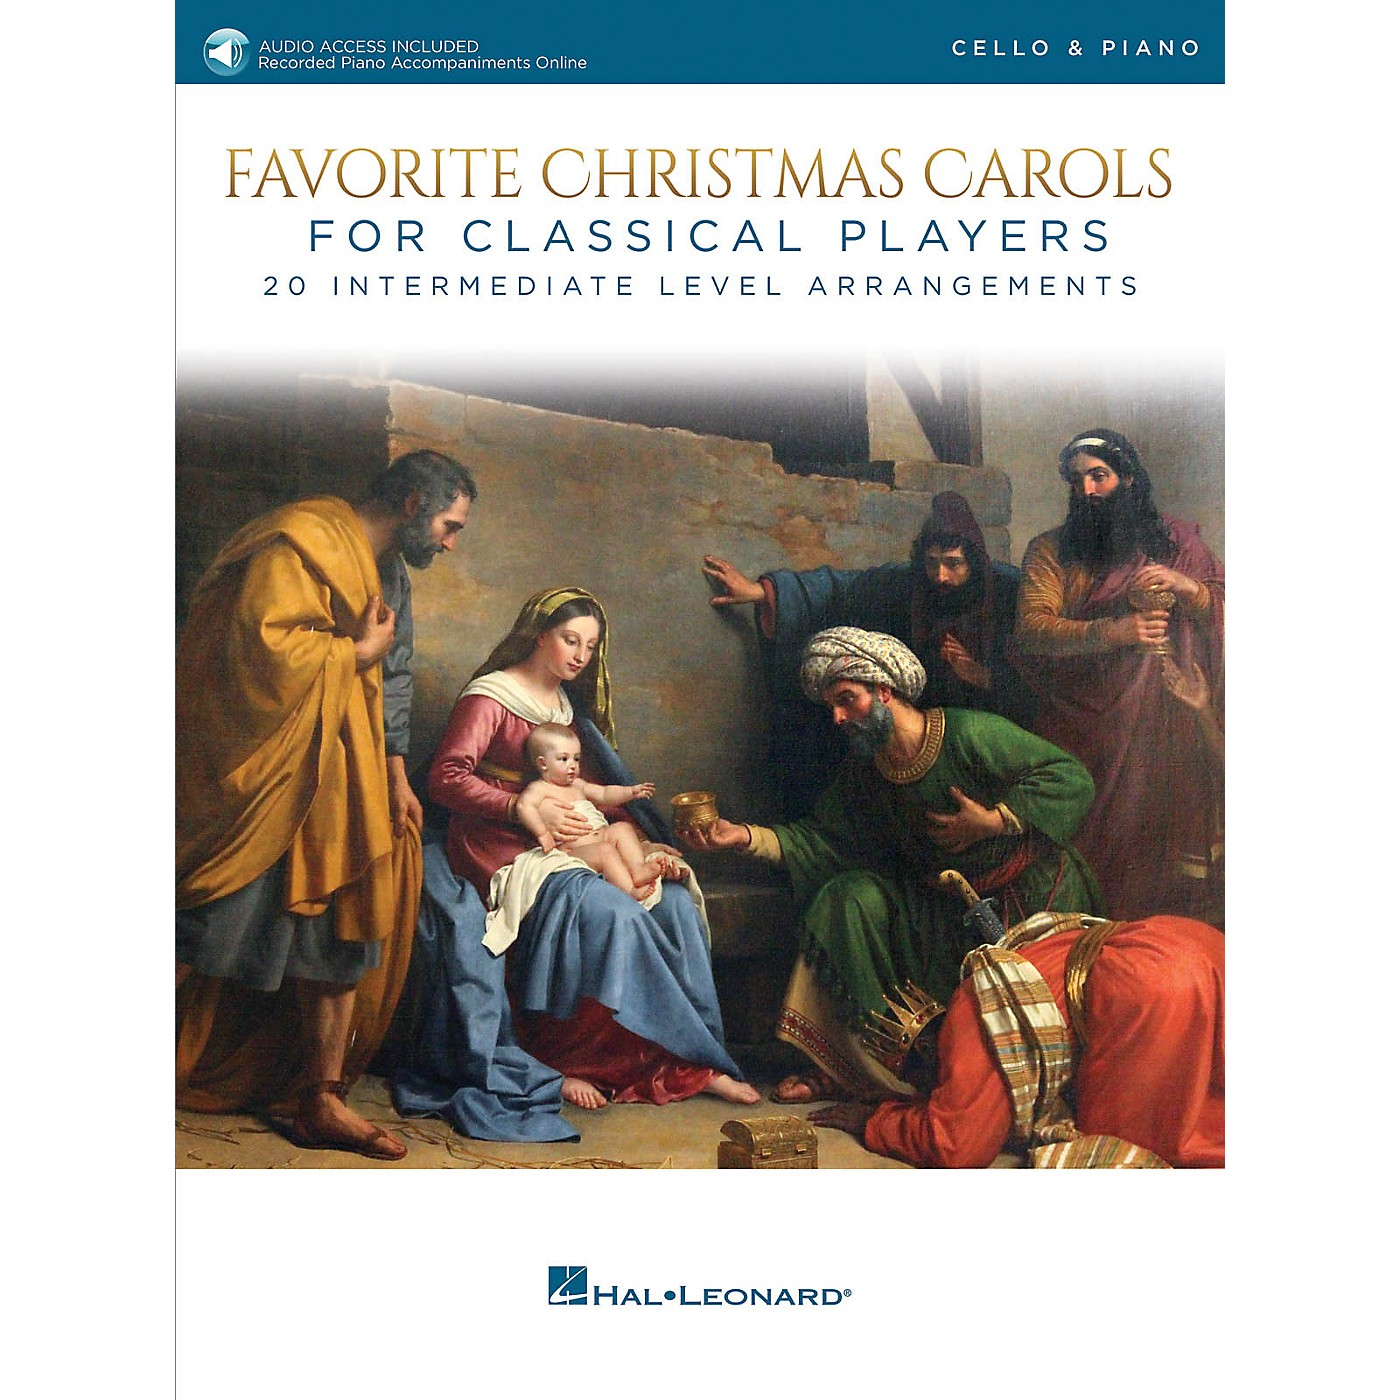 Hal Leonard Favorite Christmas Carols for Classical Players - Cello and Piano Book/Audio Online thumbnail